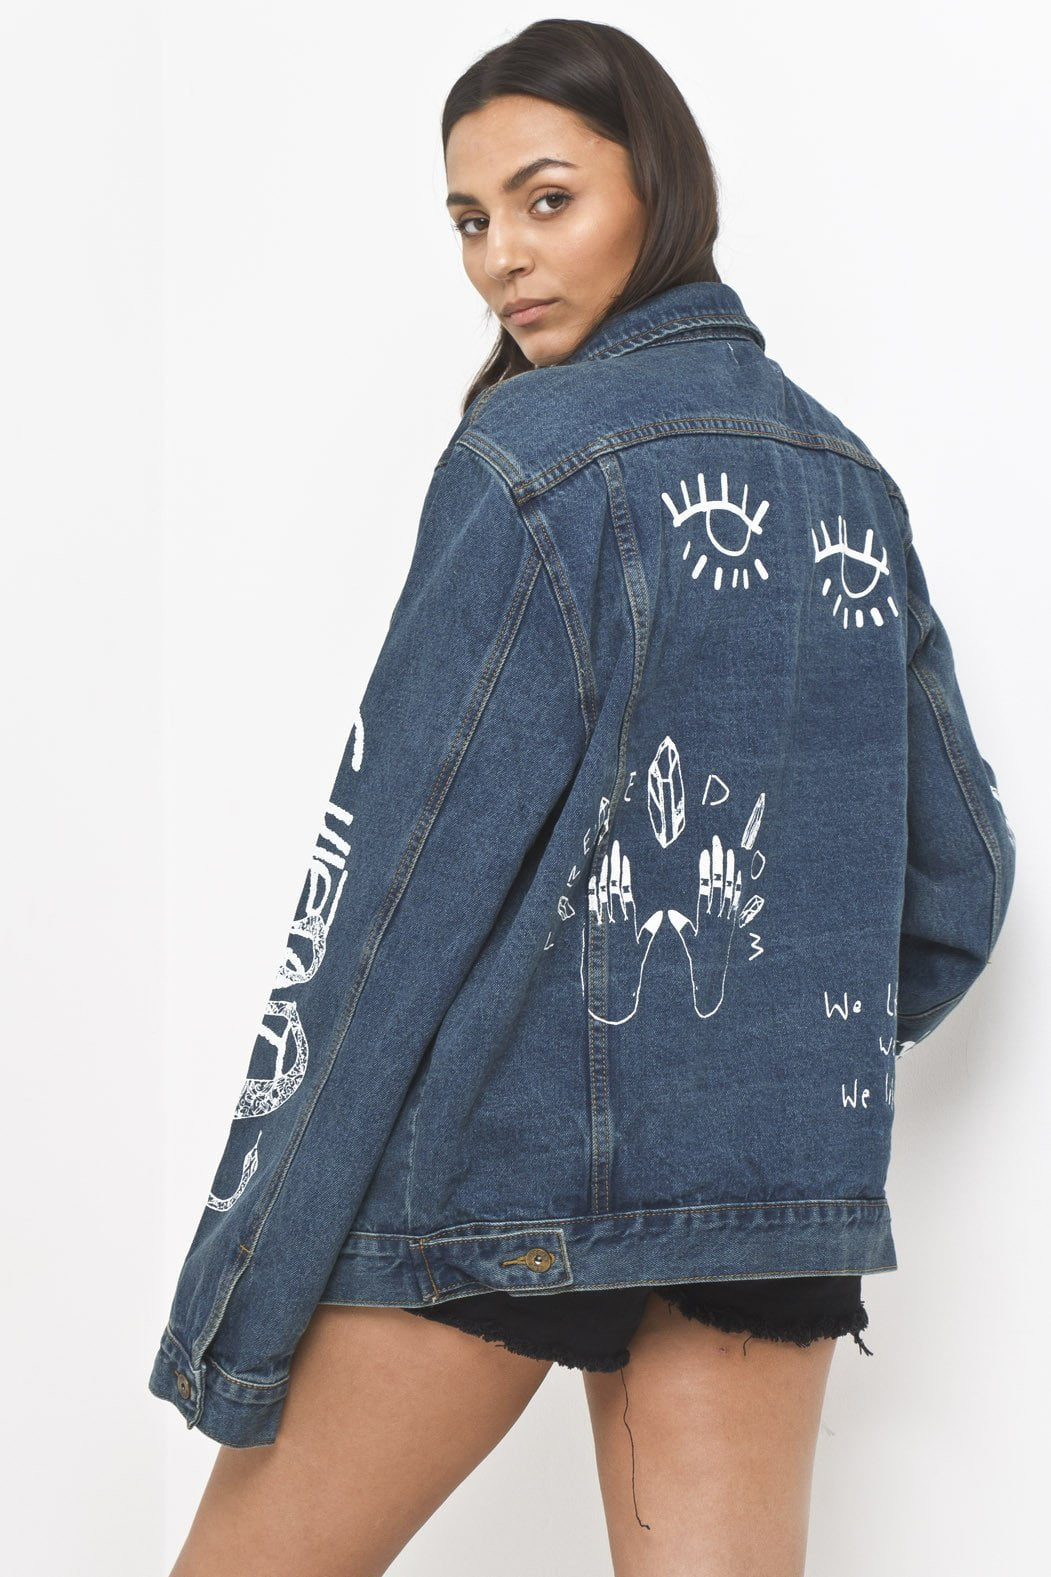 "Liquor n Poker - Boyfriend fit denim jacket with graffiti illustration ""Liars & Cheats"" - Liquor N Poker  Liquor N Poker"